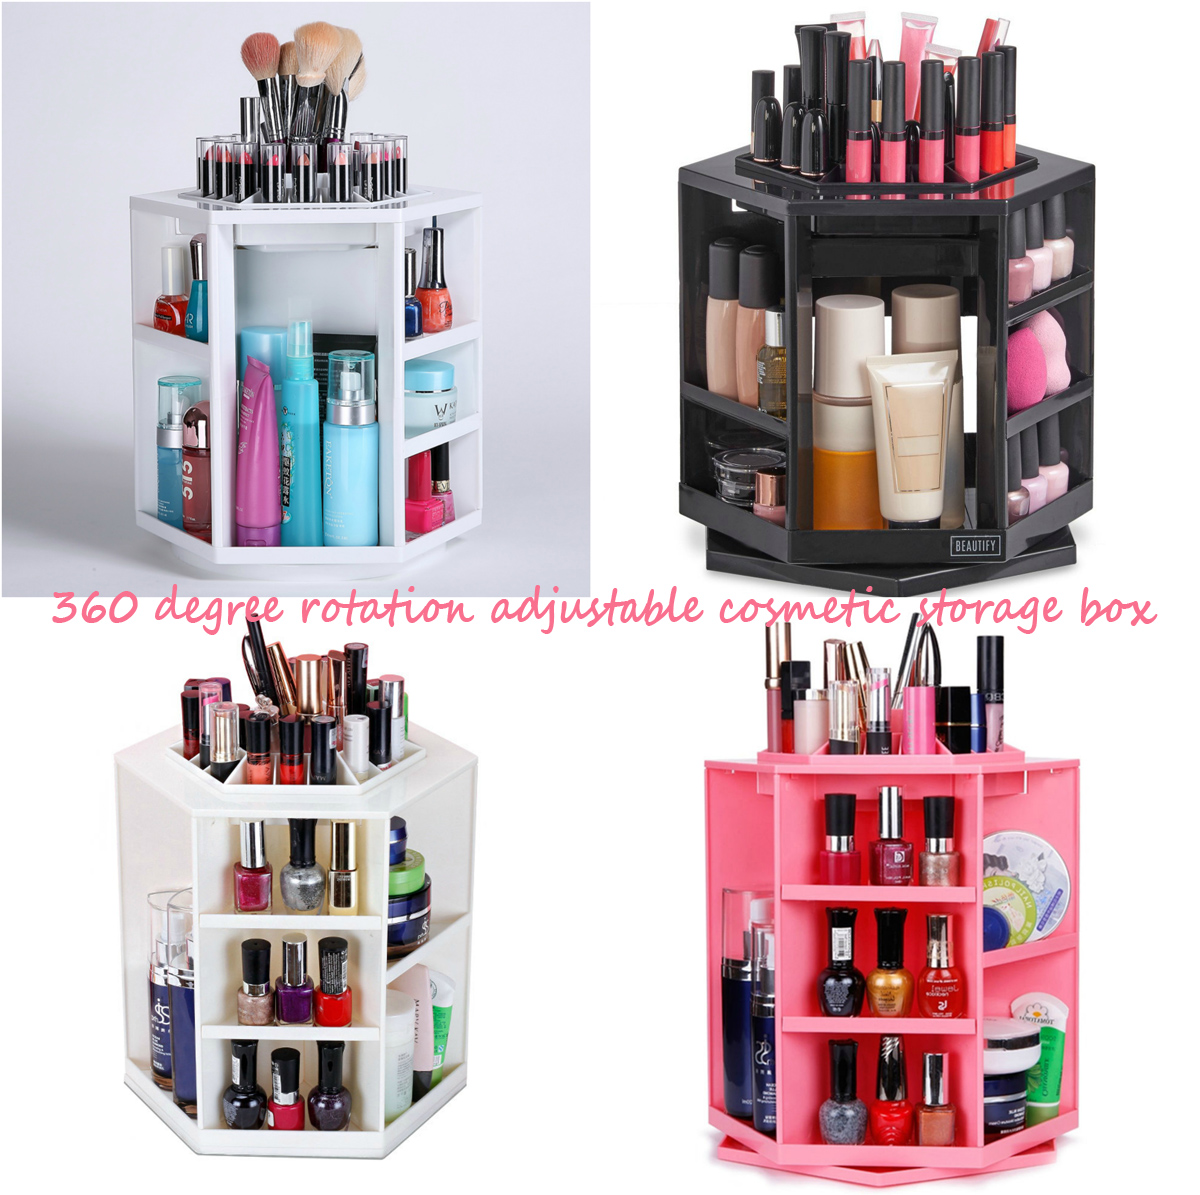 360-degree-rotation-adjustable-cosmetic-storage-box